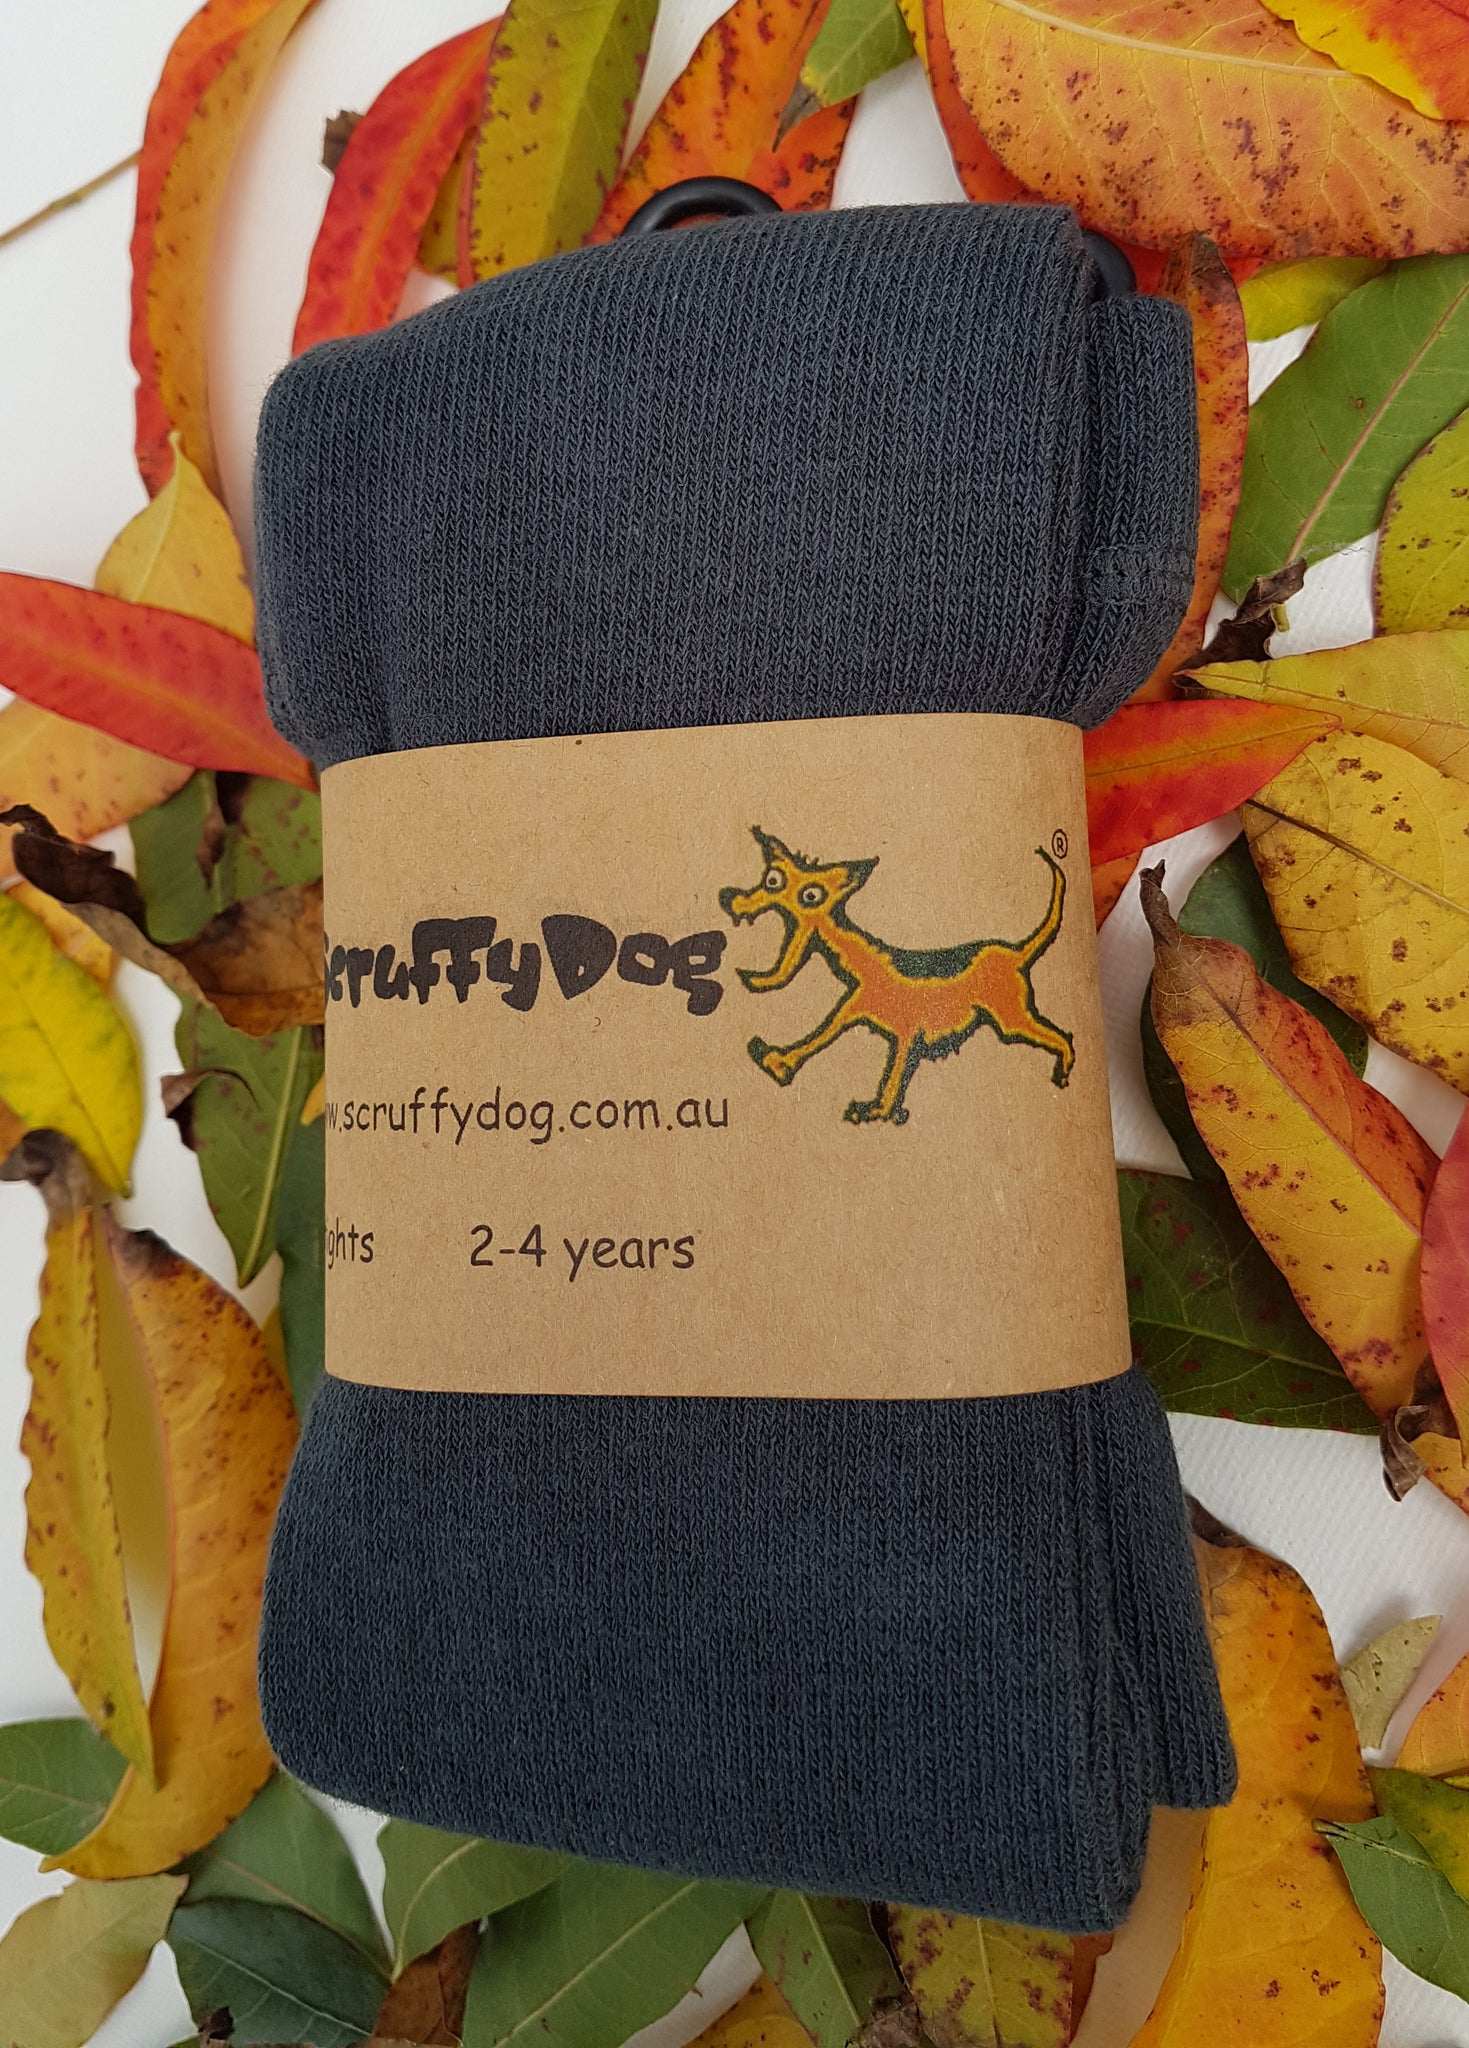 Scruffy Dog Tights - With feet